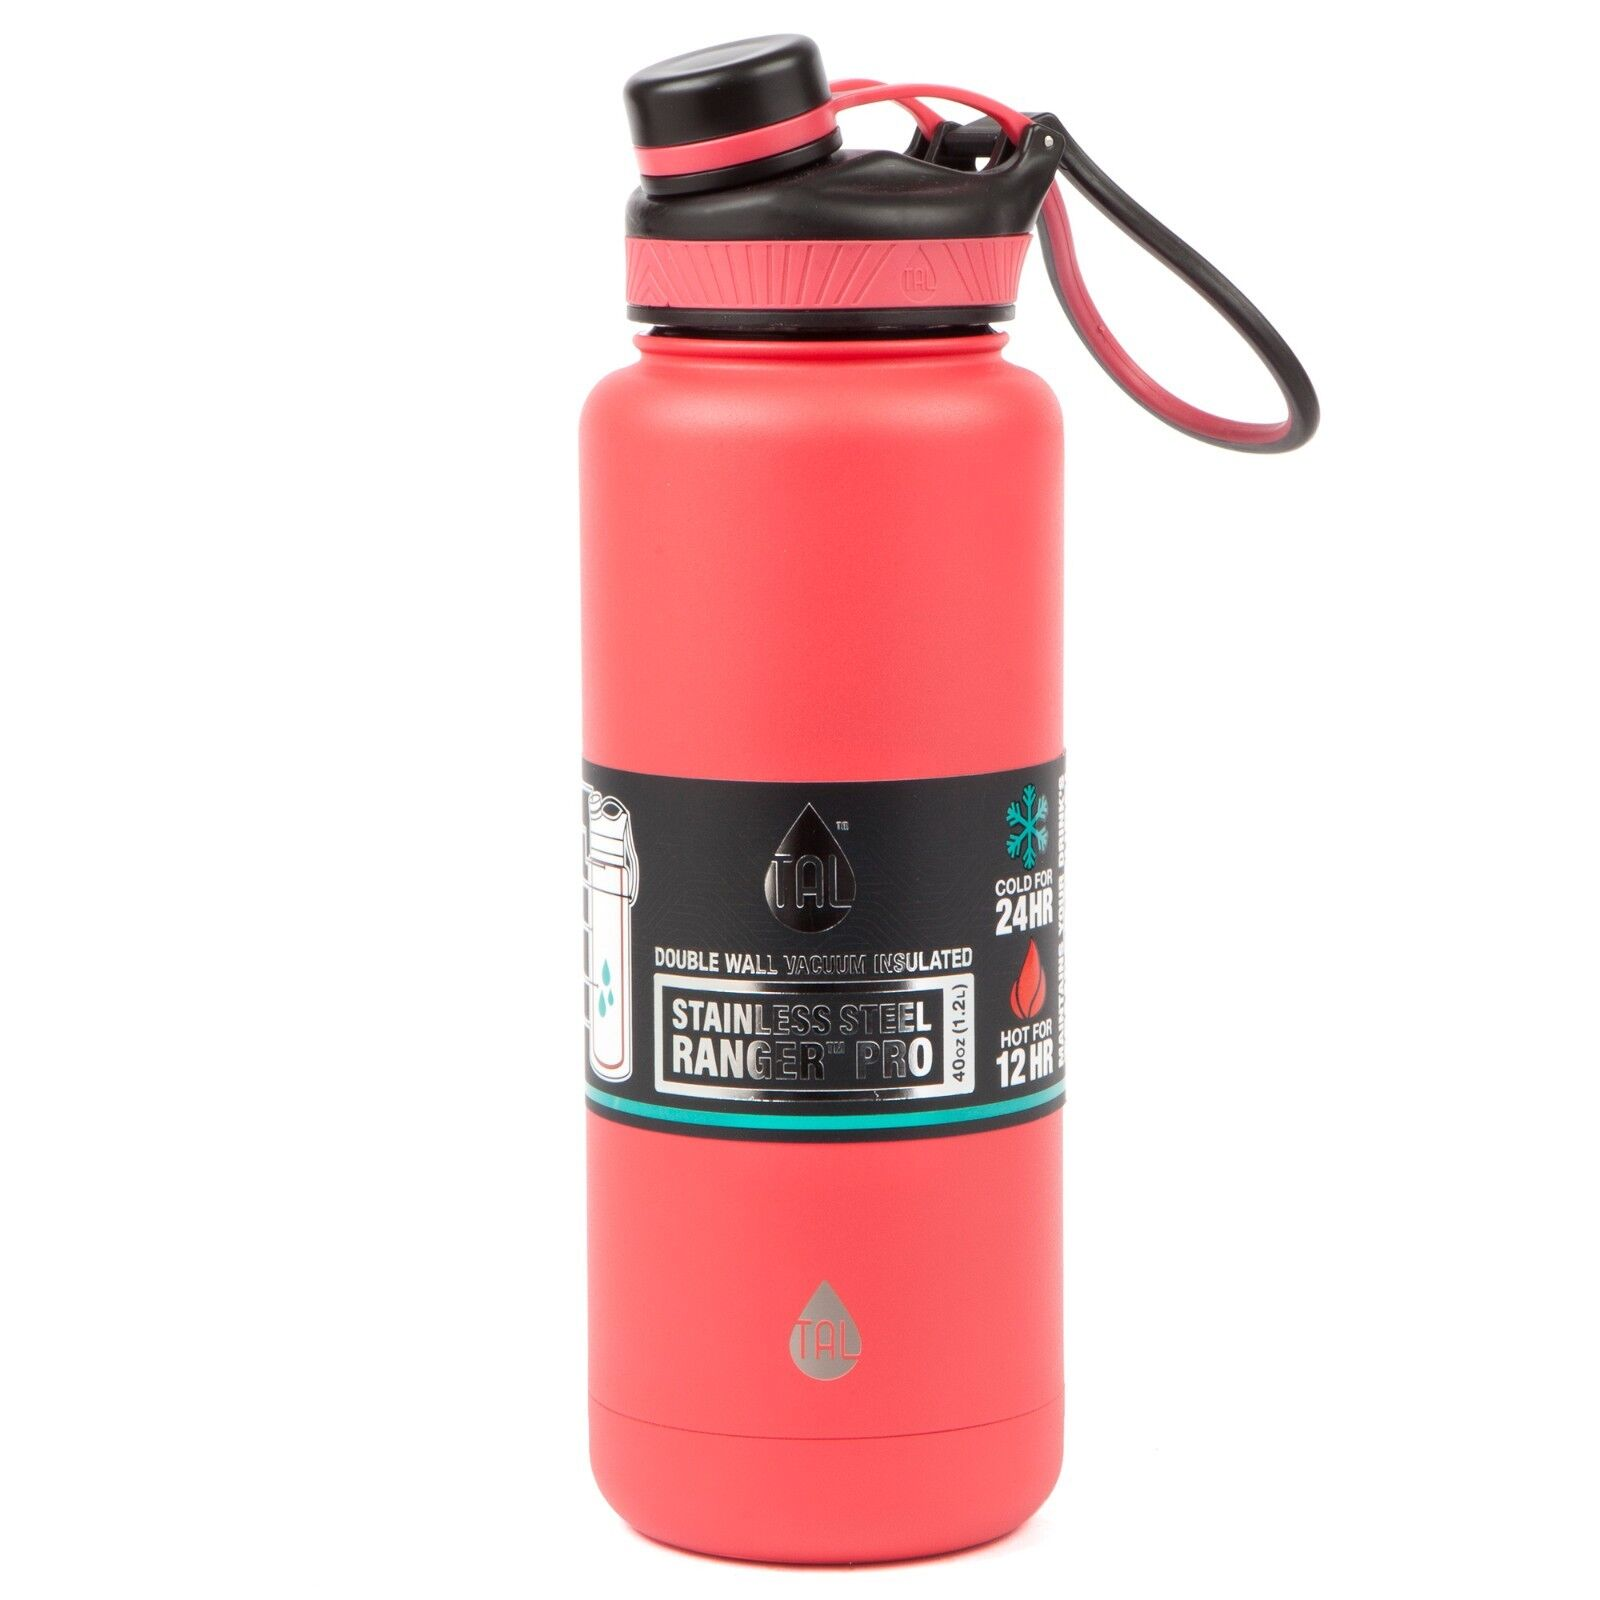 Tal Water Bottle – Ice lasts in mine on kitchen counter for 40 solid hours.